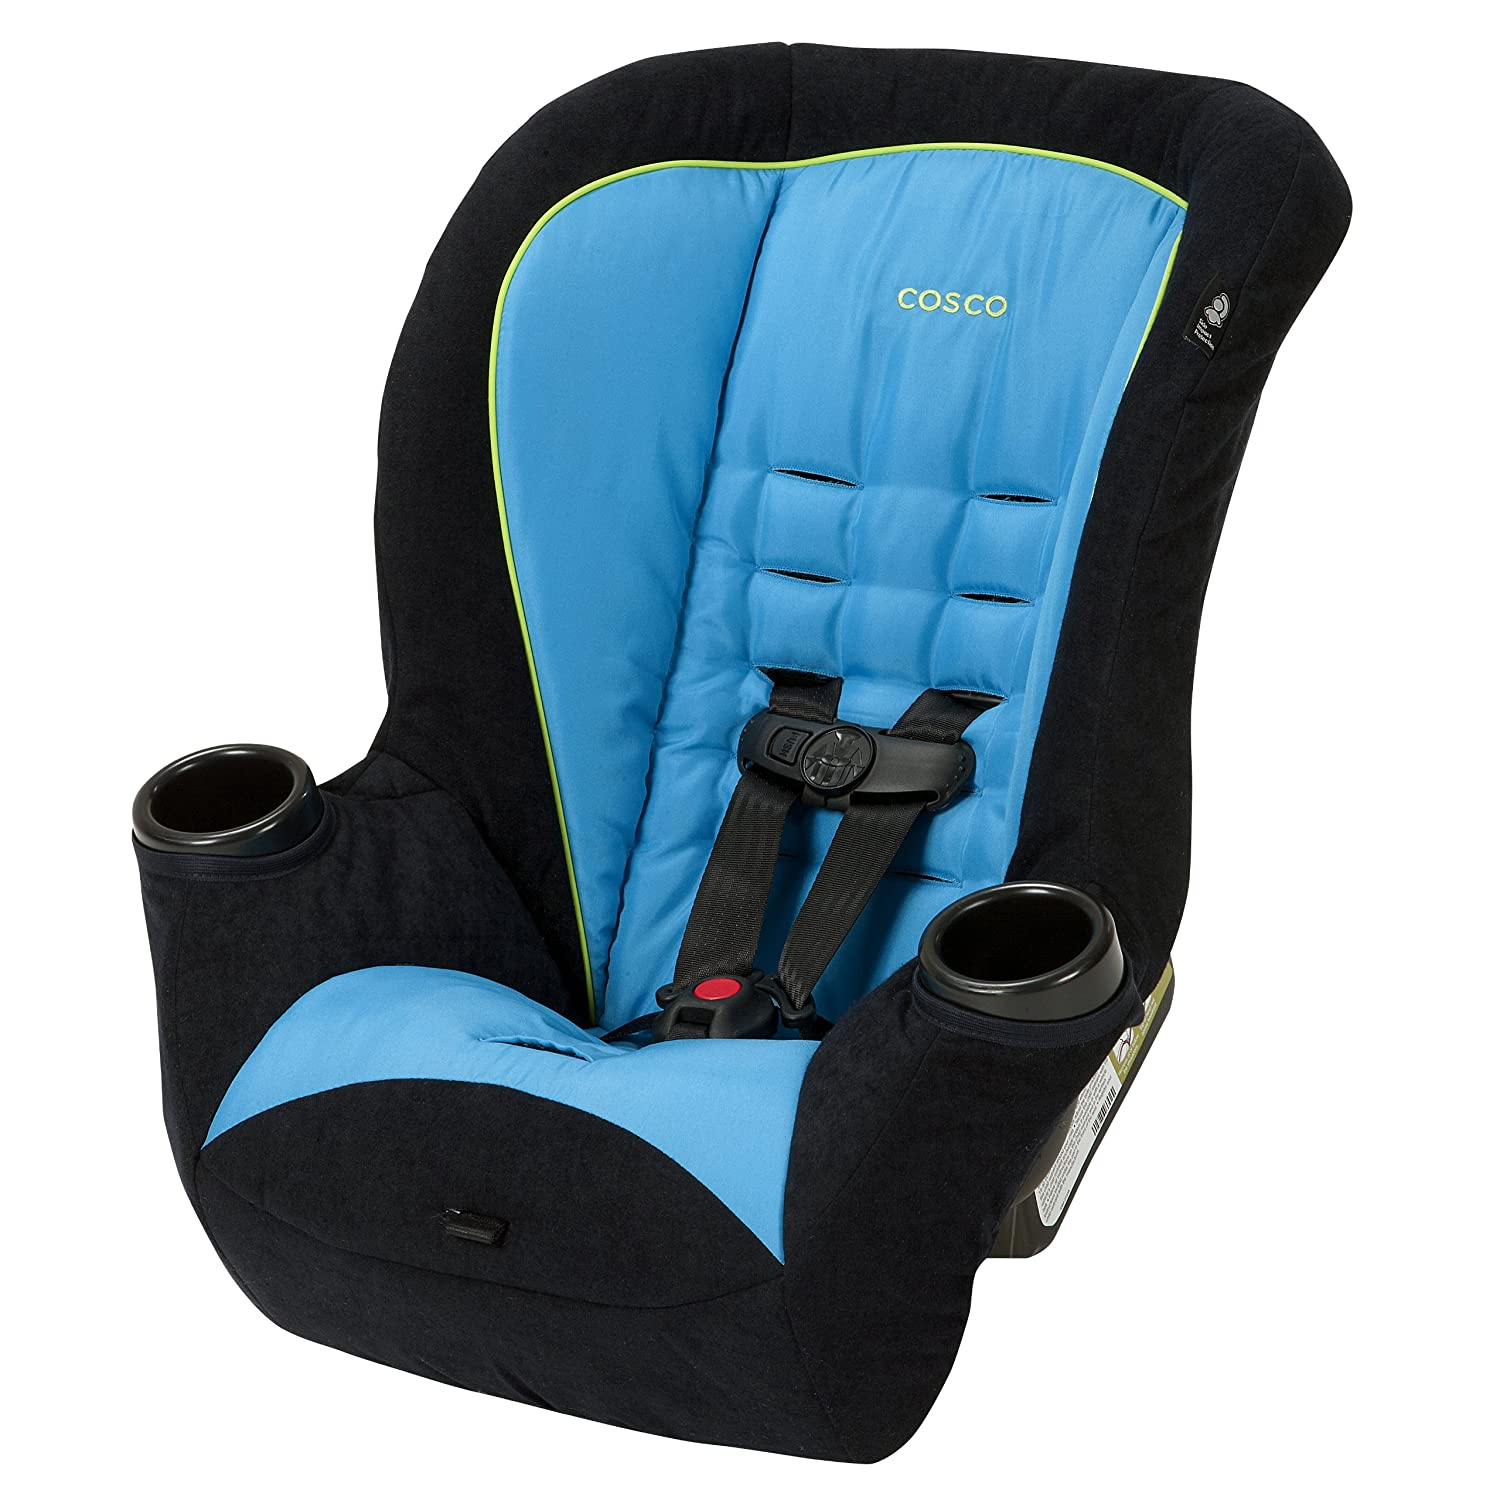 Amazon.com : Cosco Apt 40 Rear & Forward Facing Convertible Car Seat ...